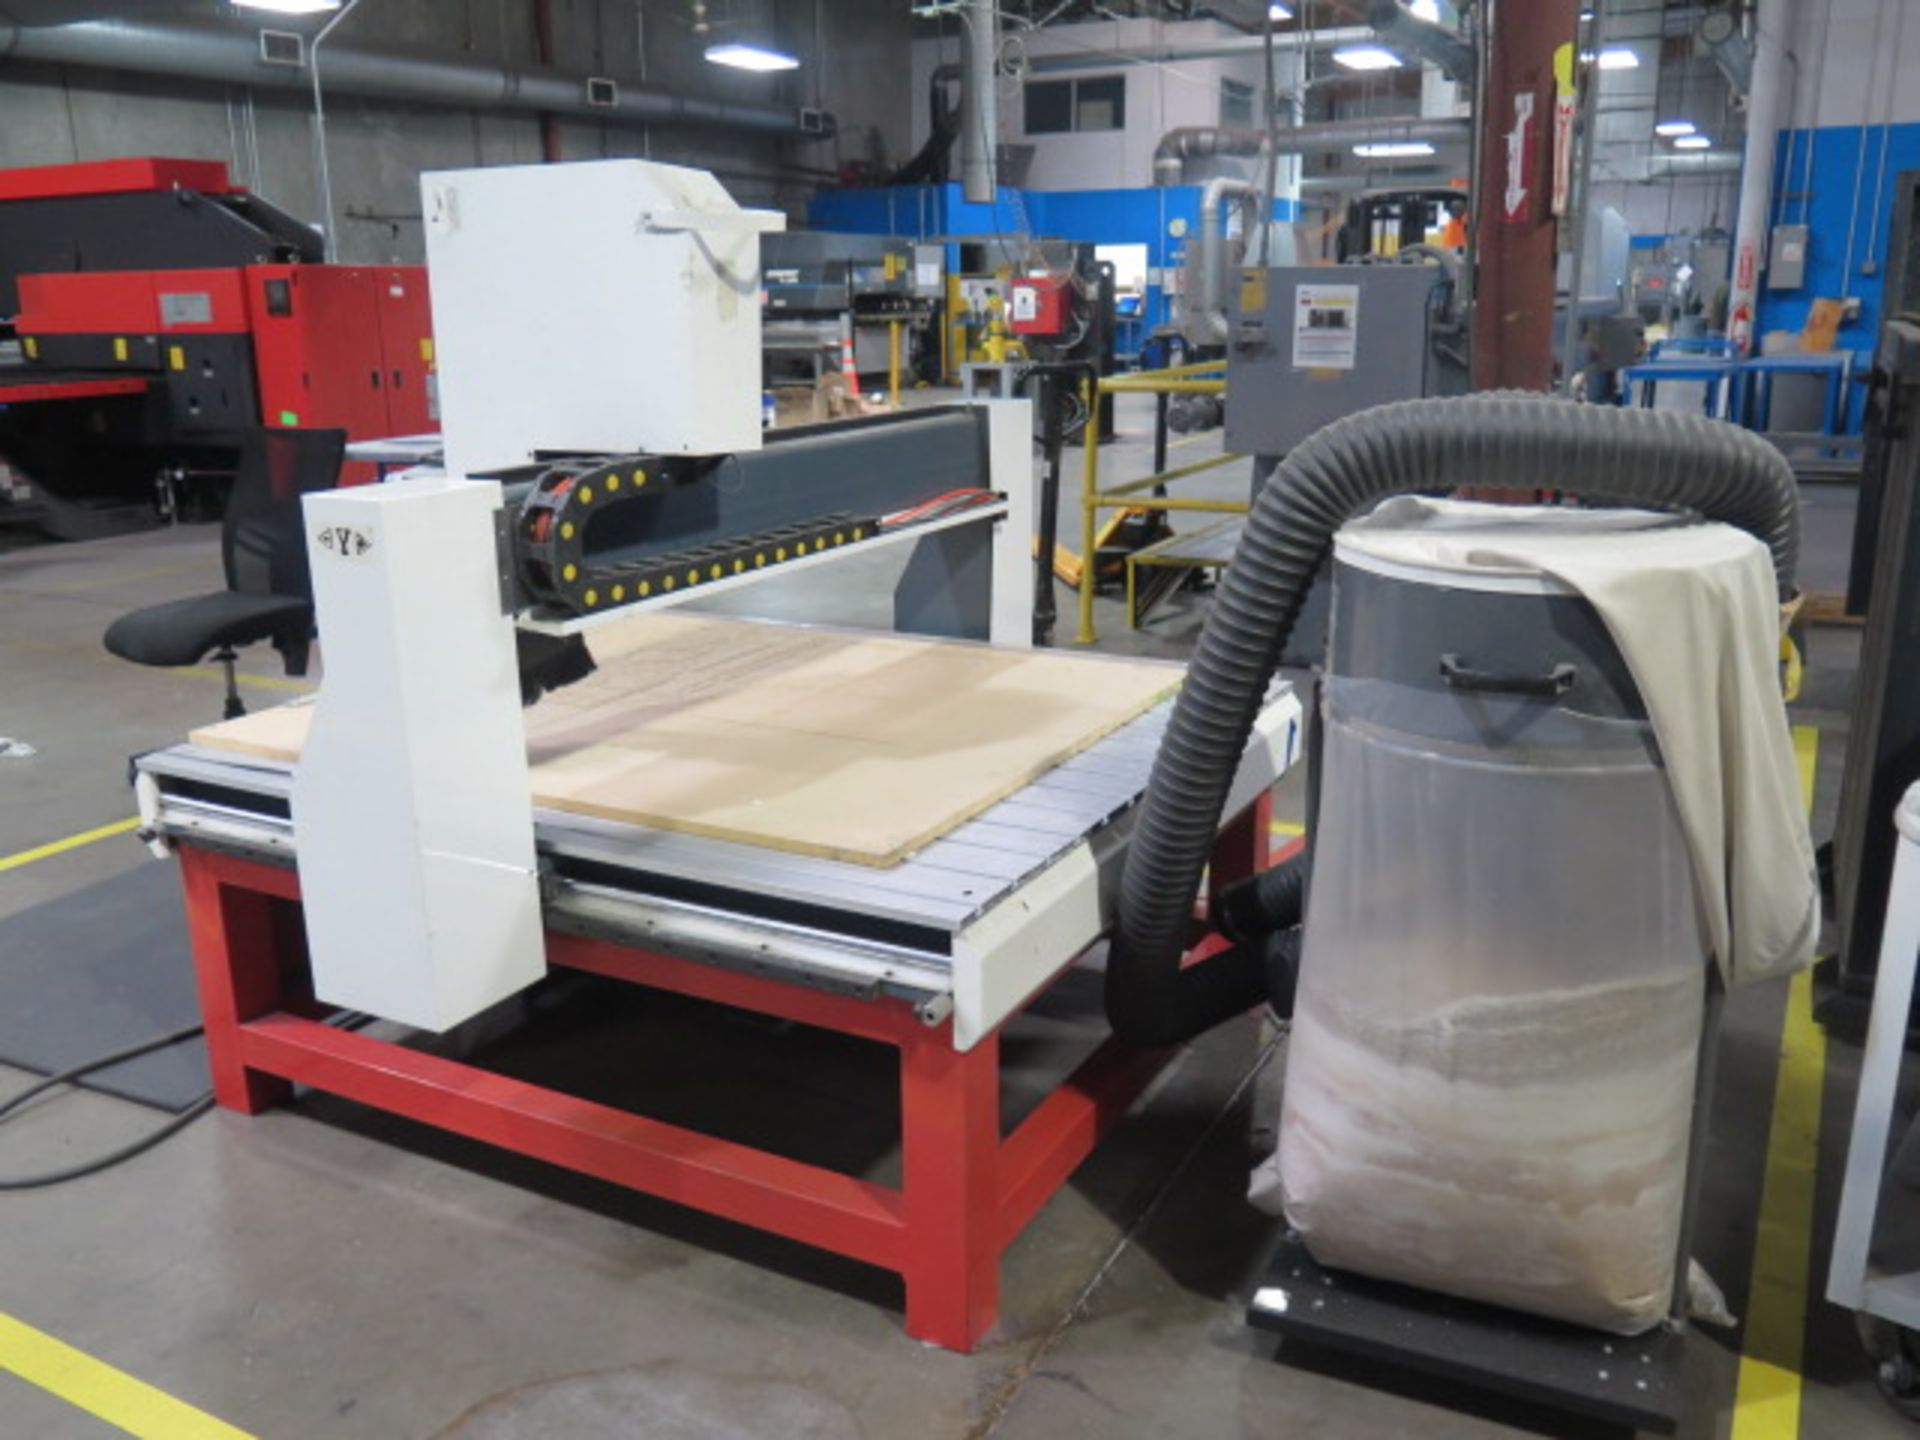 """Industrial CNC """"Mach 3"""" 48"""" x 48"""" Pro Series CNC Router w/ """"Mach 3"""" System Software, 48"""" x 48"""" x 12"""" - Image 5 of 12"""